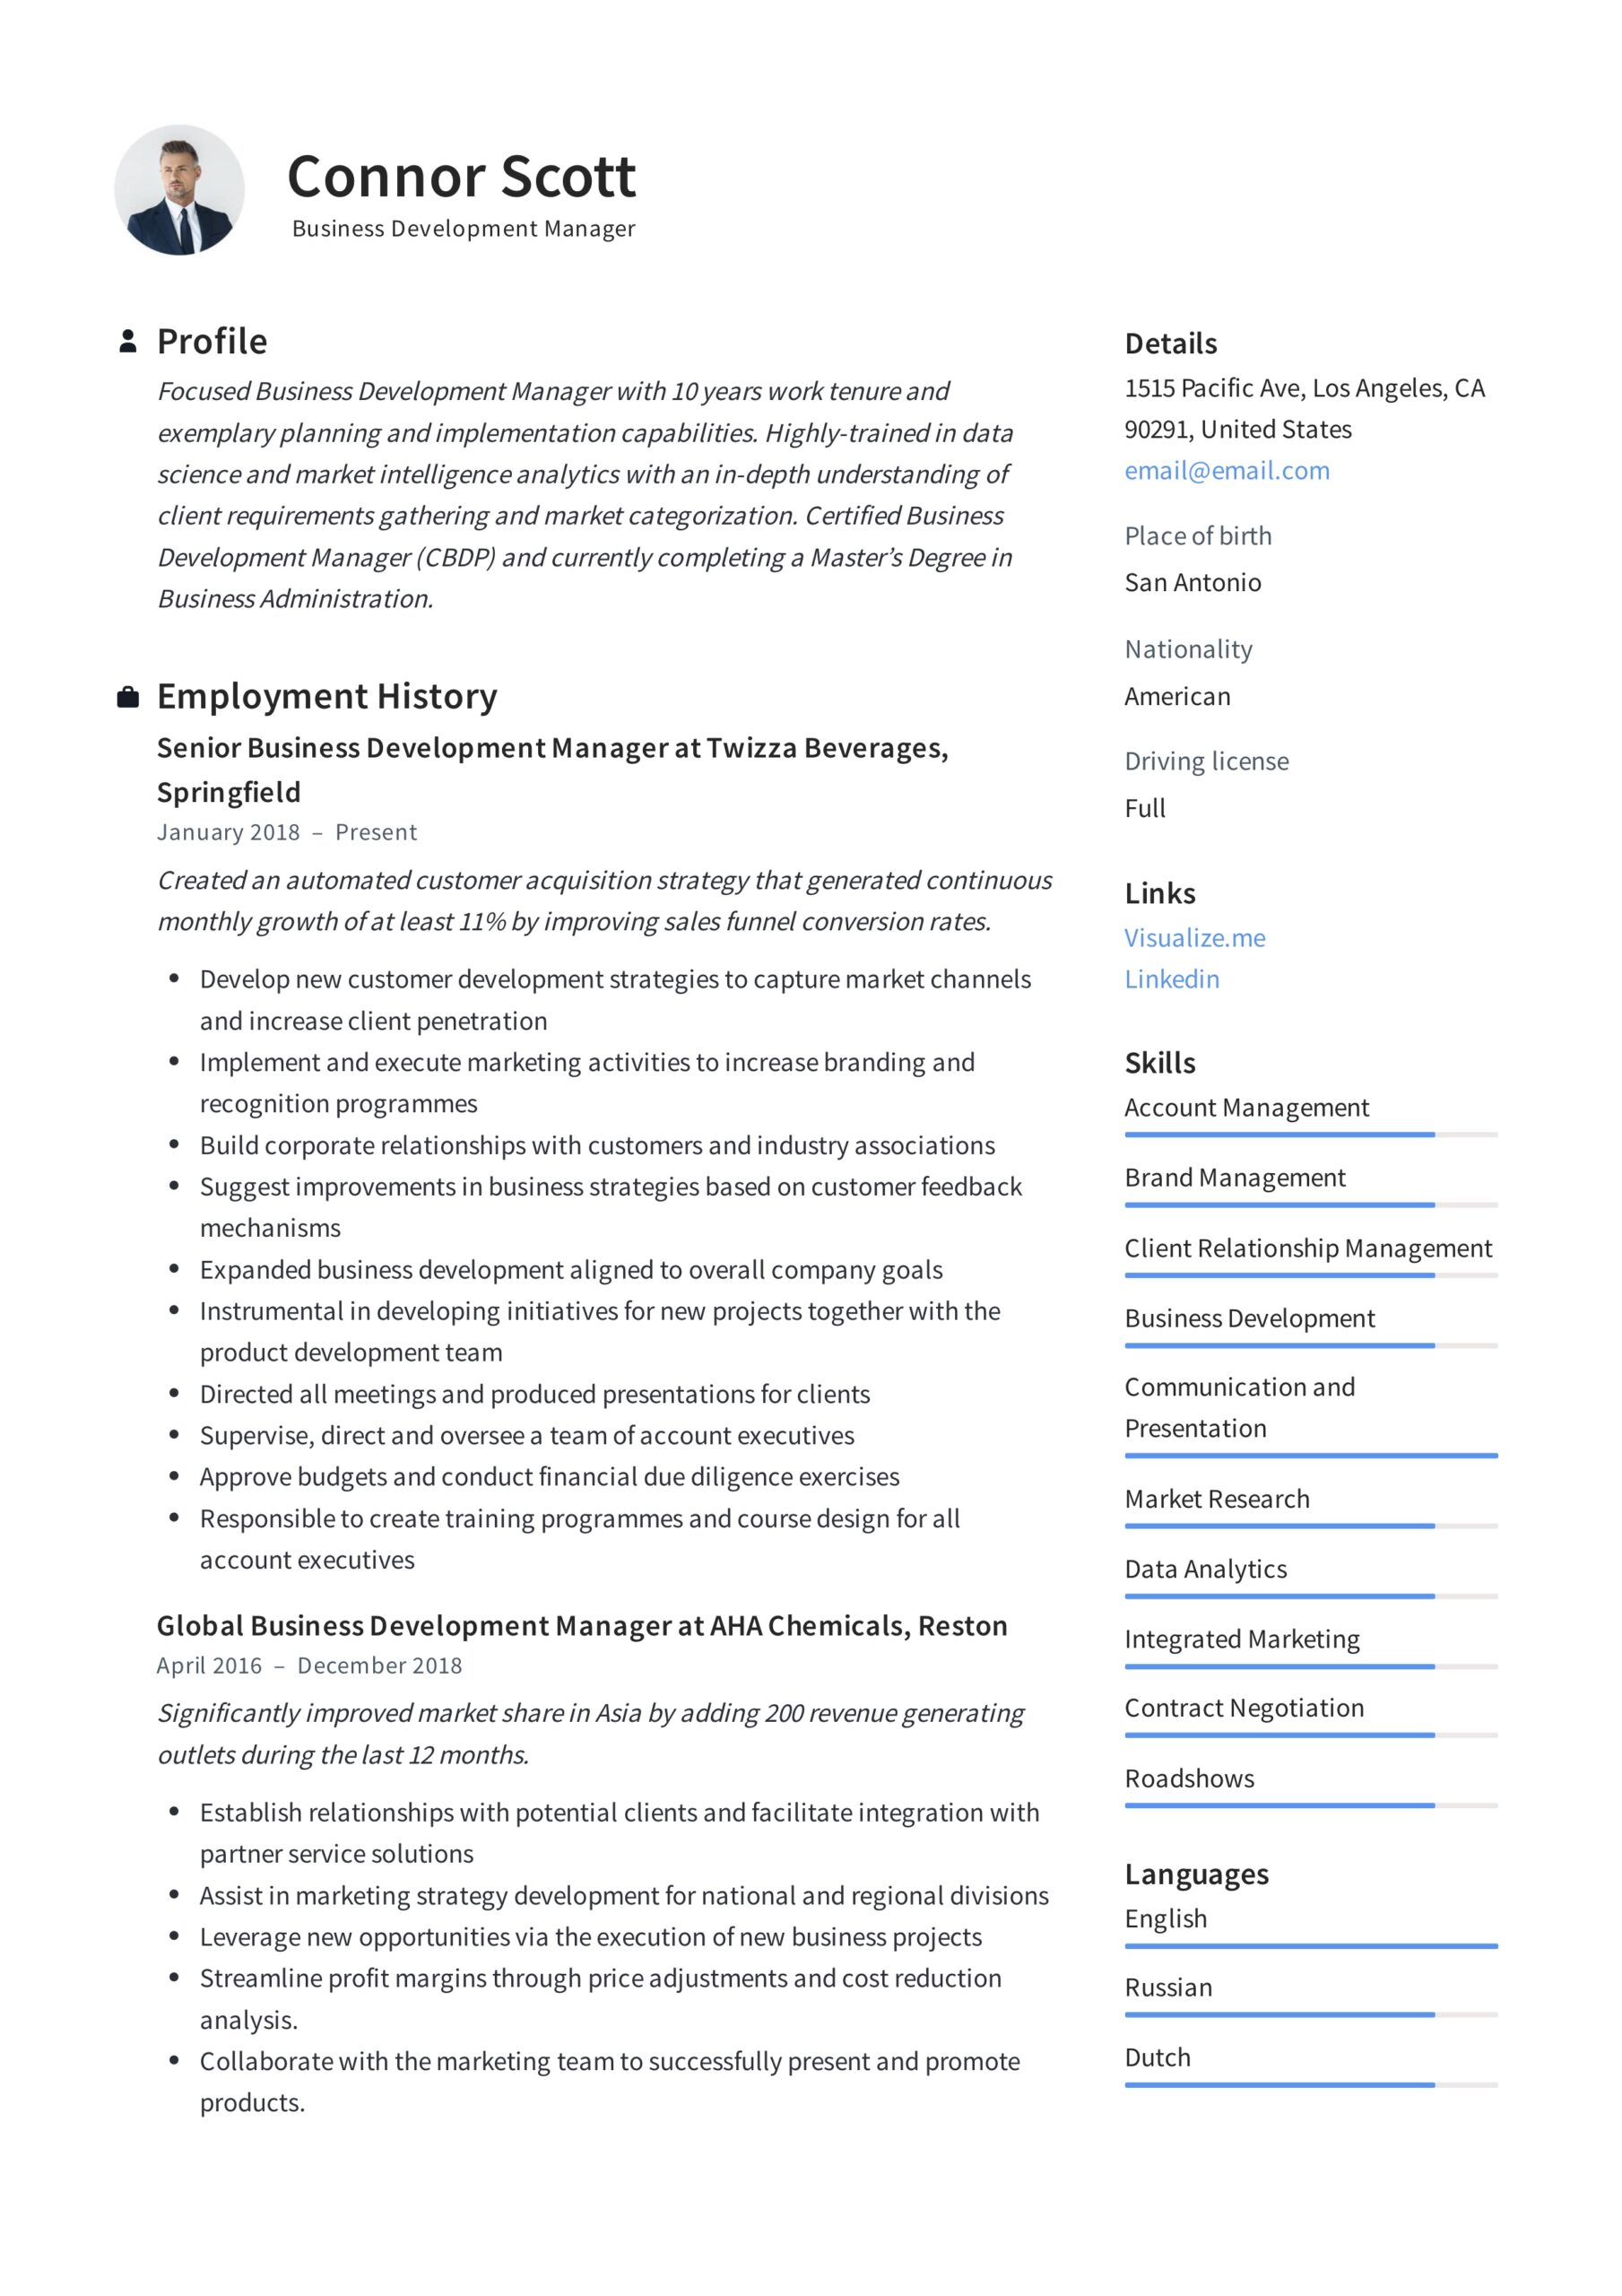 business development manager resume guide templates pdf executive skills available upon Resume Business Development Executive Skills Resume